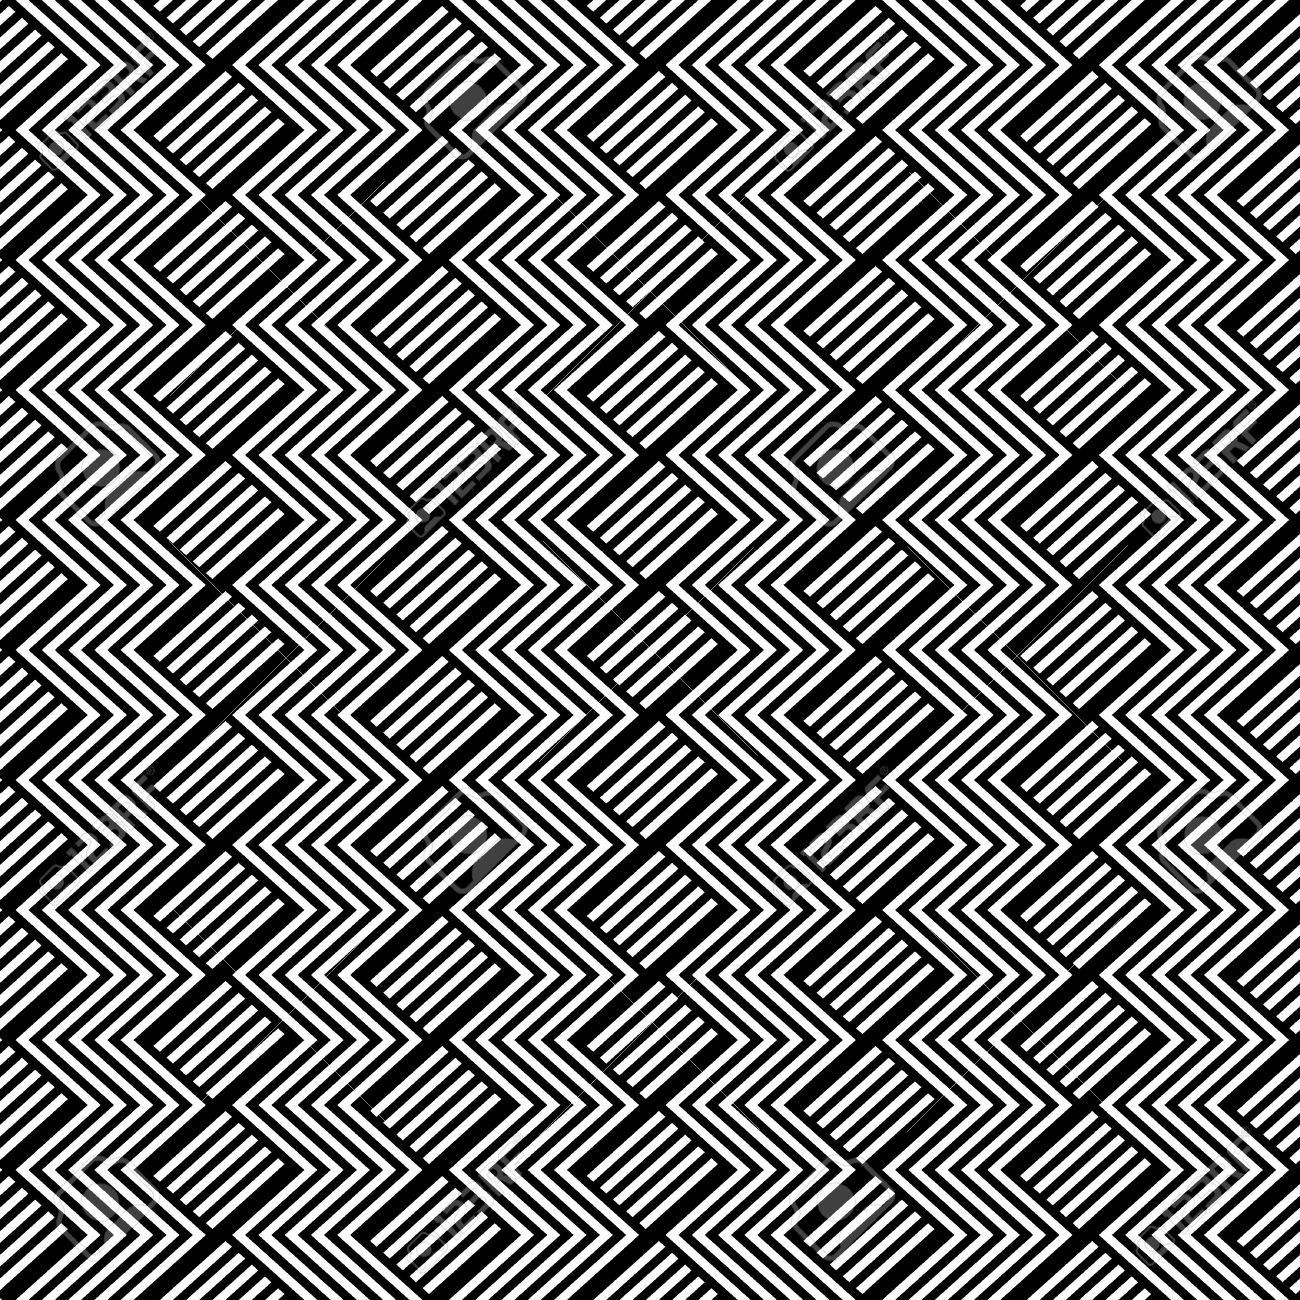 Seamless geometric pattern with zigzag texture. Vector art. - 13023054